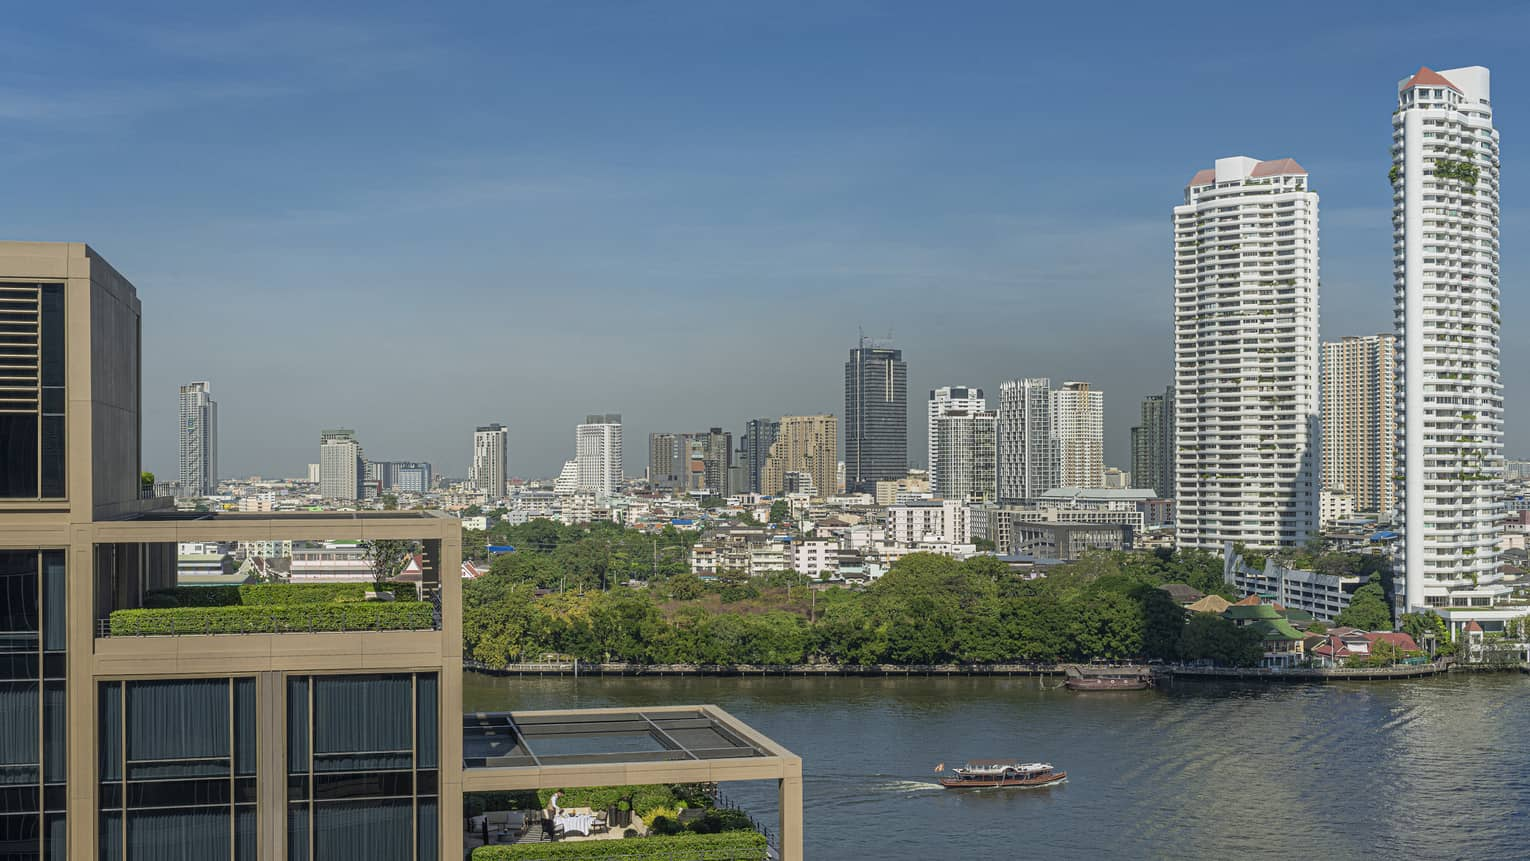 Hotel suites' outdoor patios, terraced on building, overlooking the Chao Phraya River and city